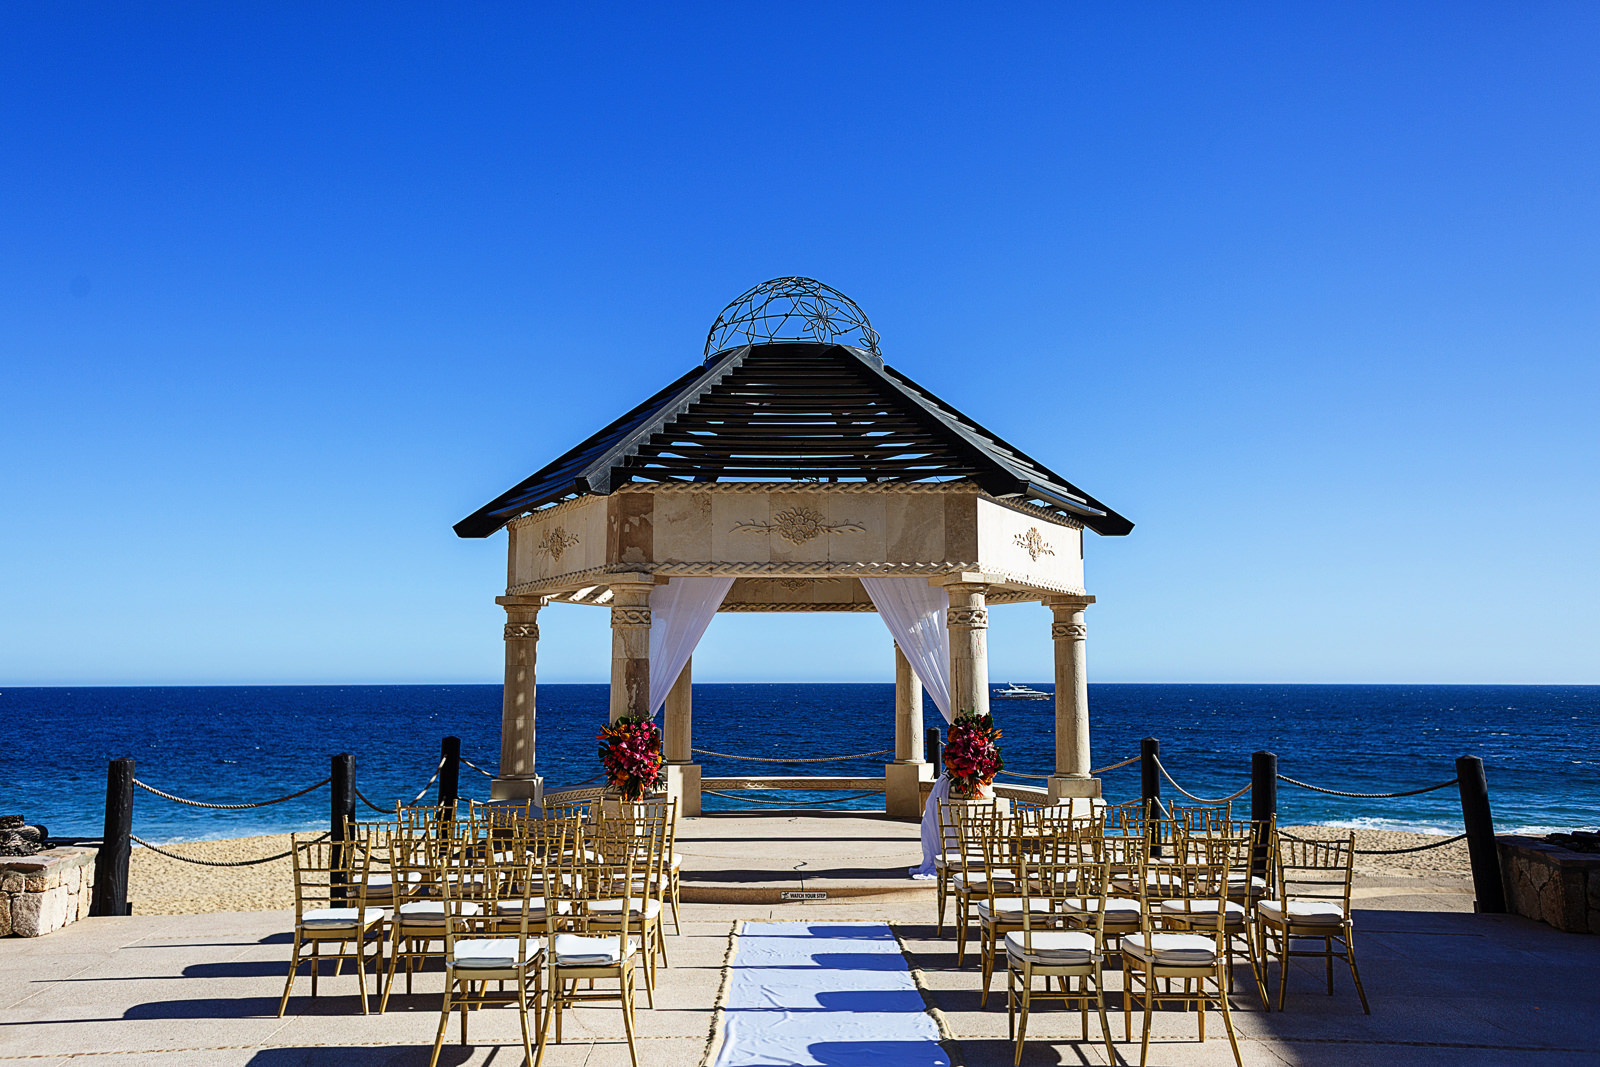 Ceremony setup for wedding at Grand Solmar in Cabo San Lucas, Mexico